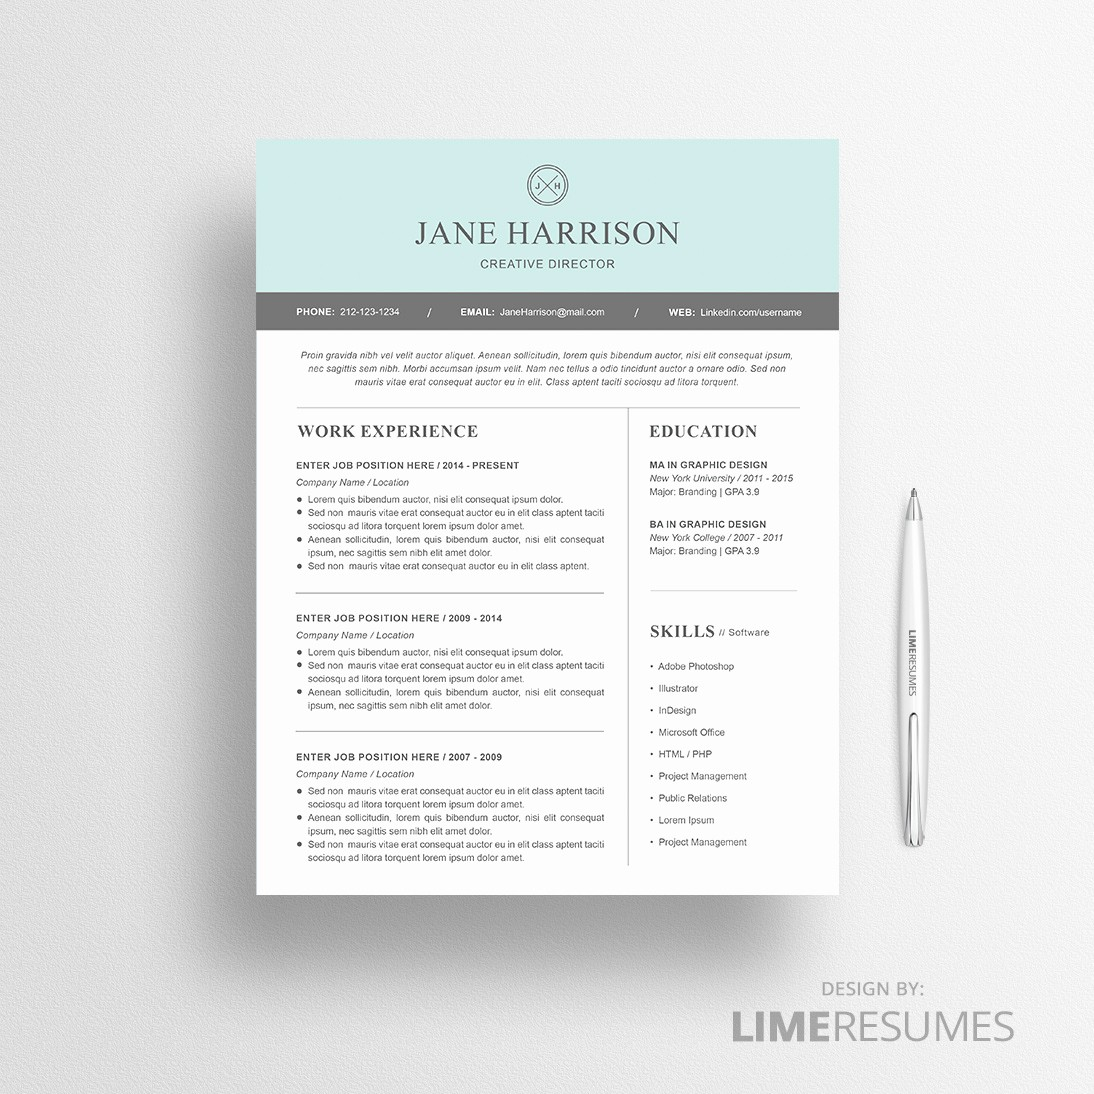 Cv format Samples In Word Unique Modern Resume Template for Microsoft Word Limeresumes